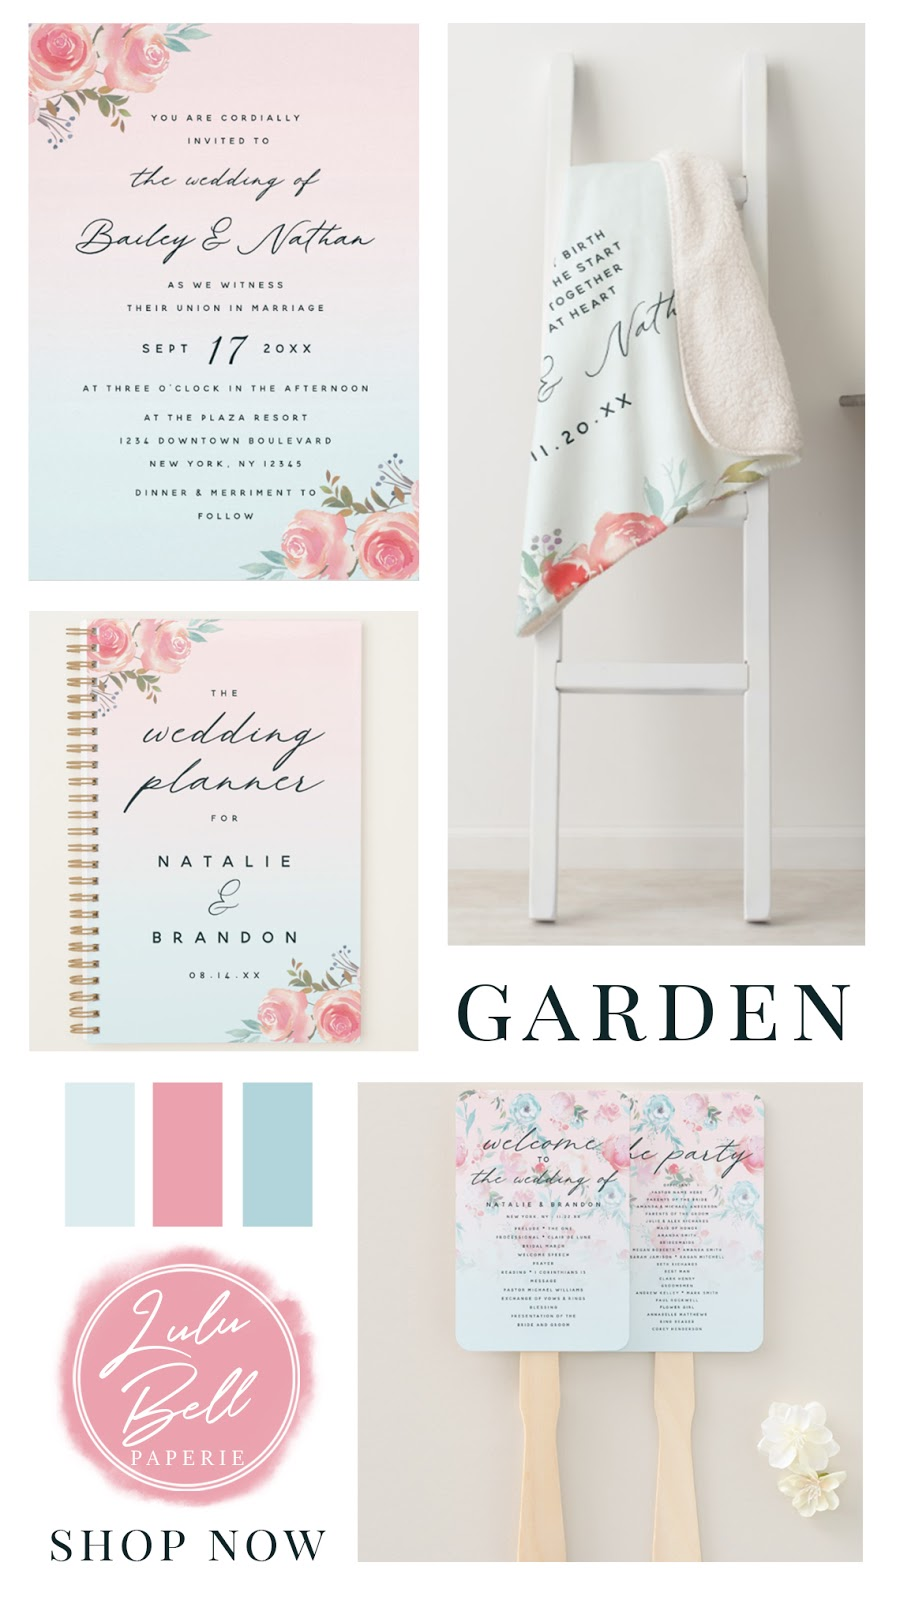 French Garden Floral Wedding Suite - Wedding Invitations, Keepsake Quote Blankets, Wedding Planner Book, and Program Hand Fans